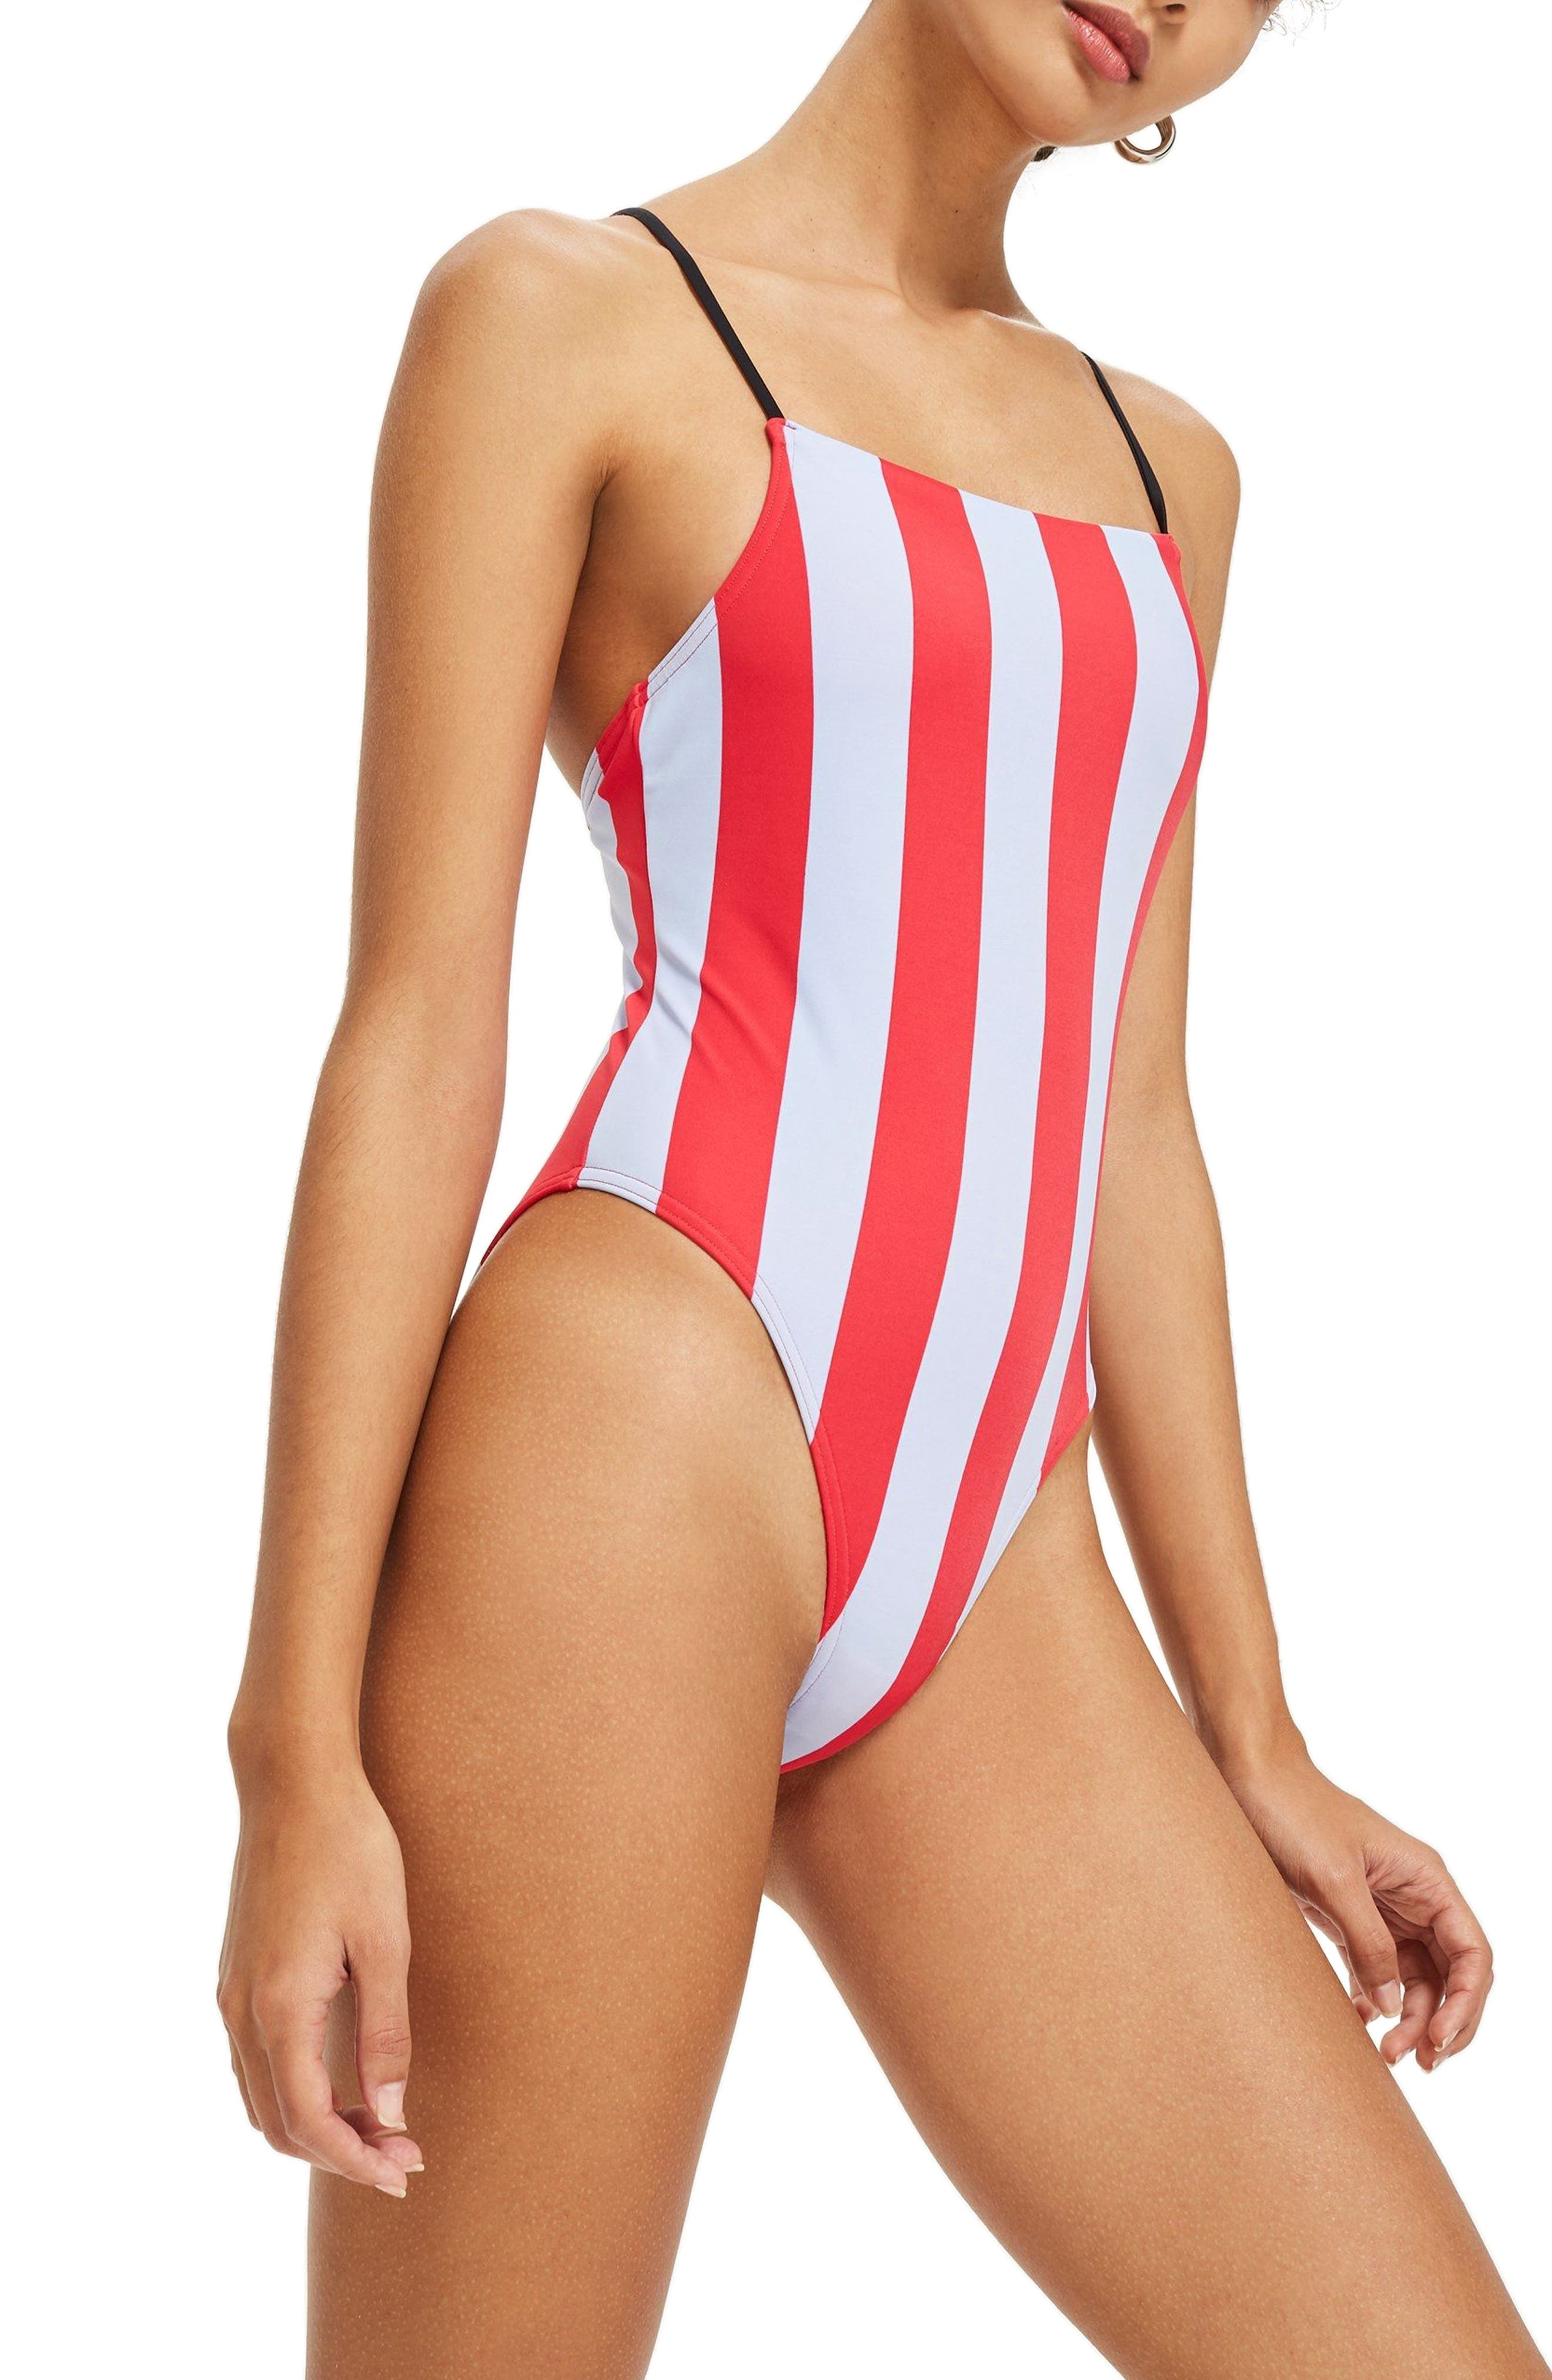 Stripe One-Piece Swimsuit,                             Main thumbnail 1, color,                             Red Multi